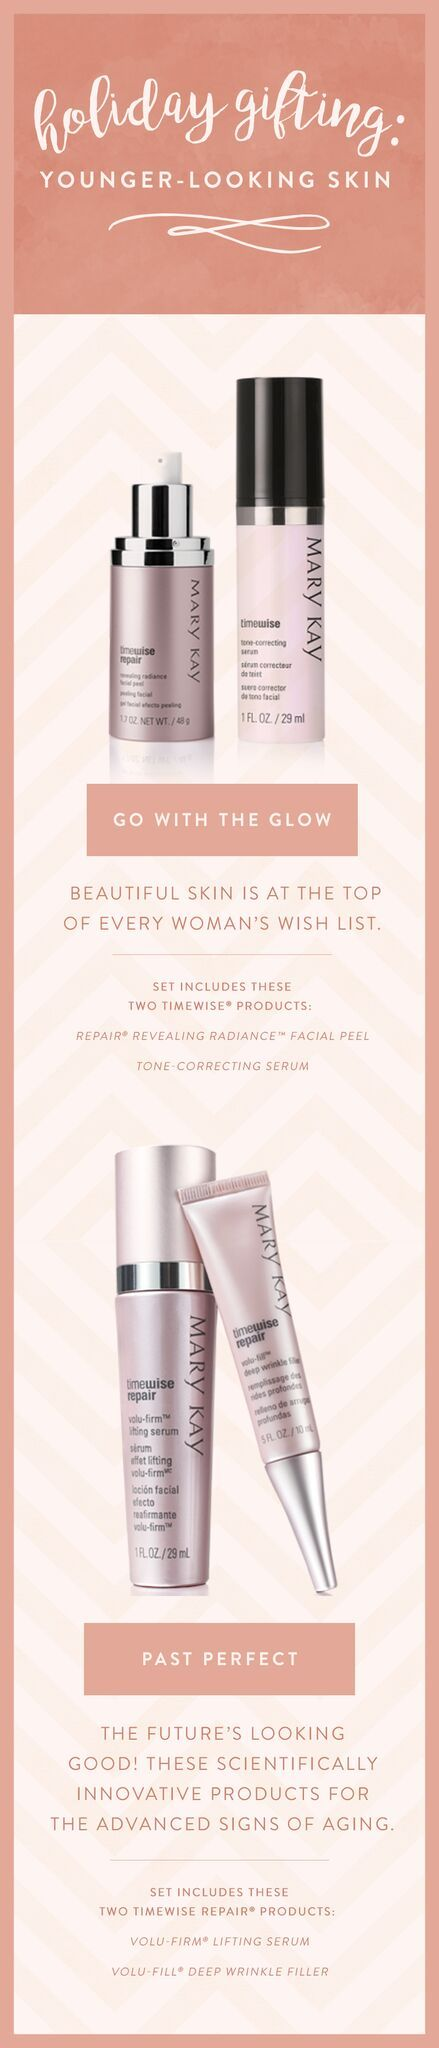 Go with the glow this holiday season! Give your mother, daughter or best friend the gift of younger-looking skin. | Mary Kay